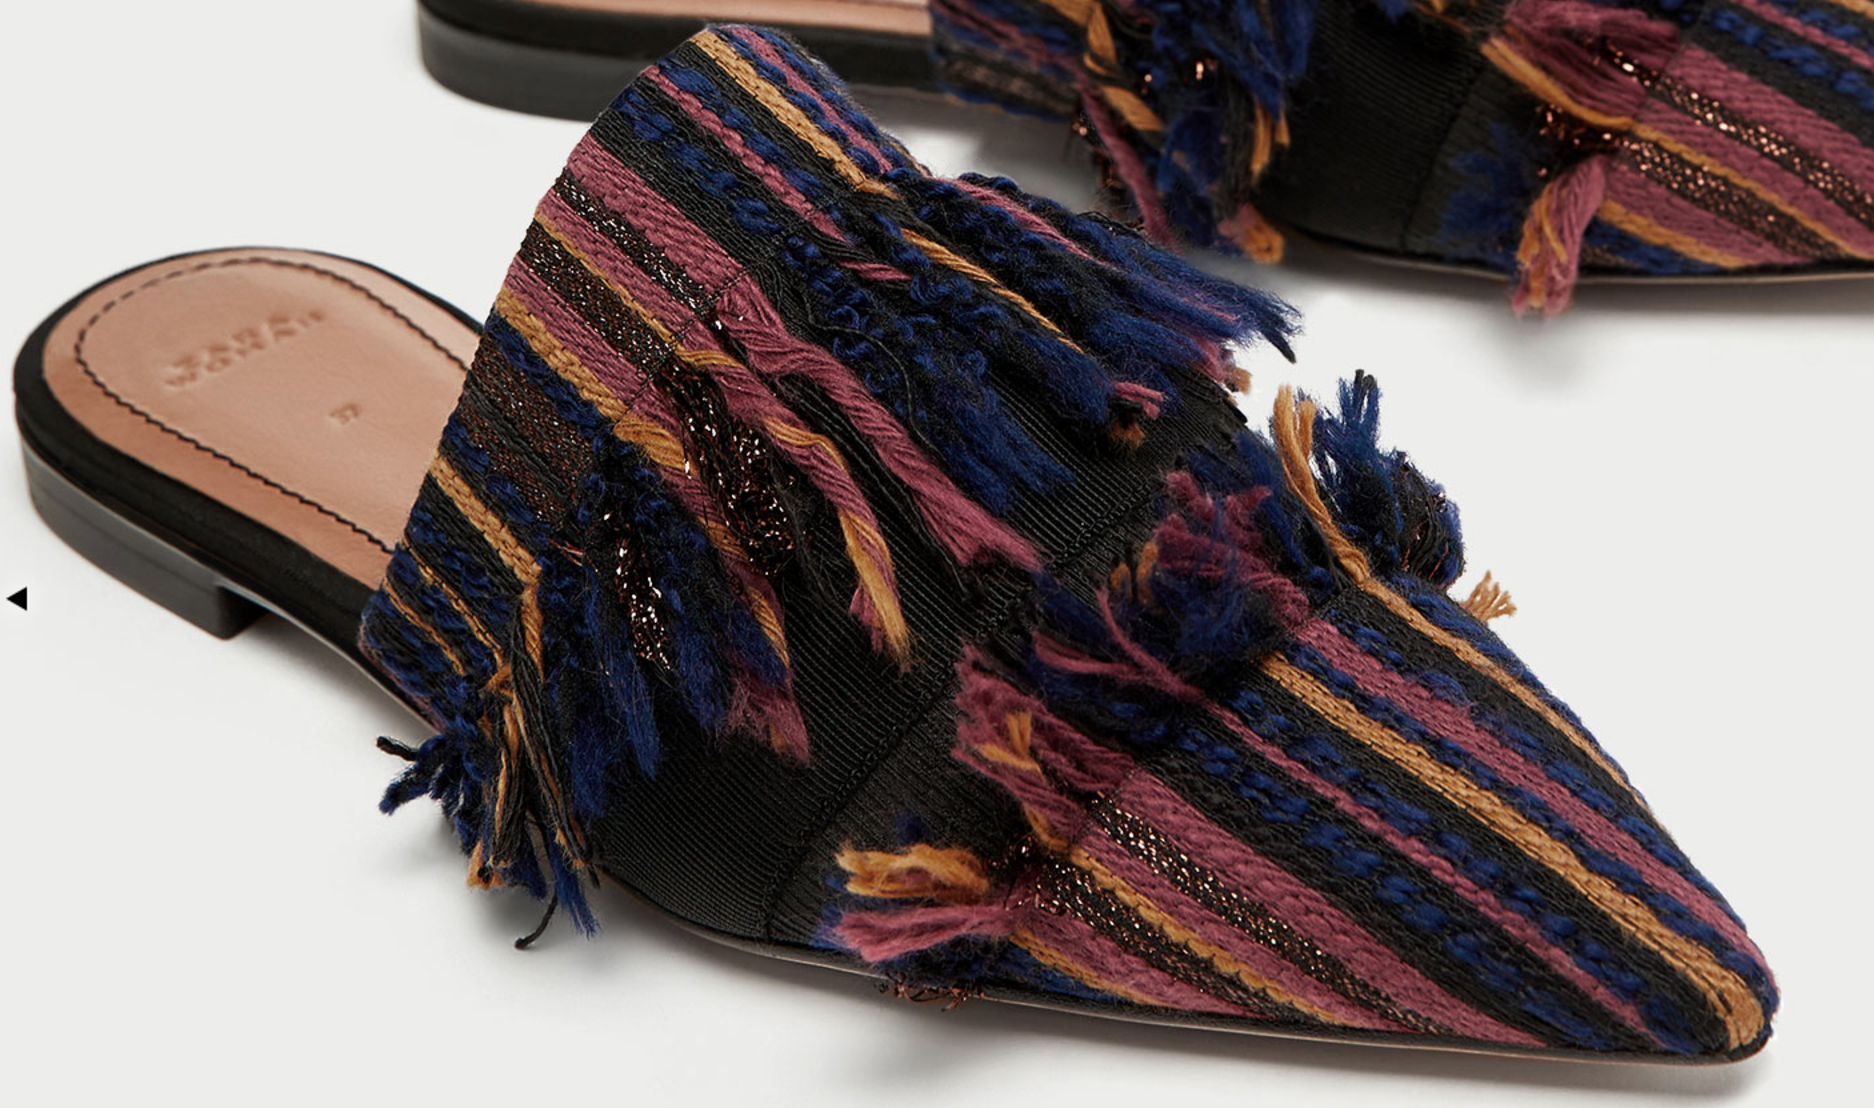 6 Must Have Shoes For Fall - Zara Flat Frayed Fabric Mules - The Face Of Style